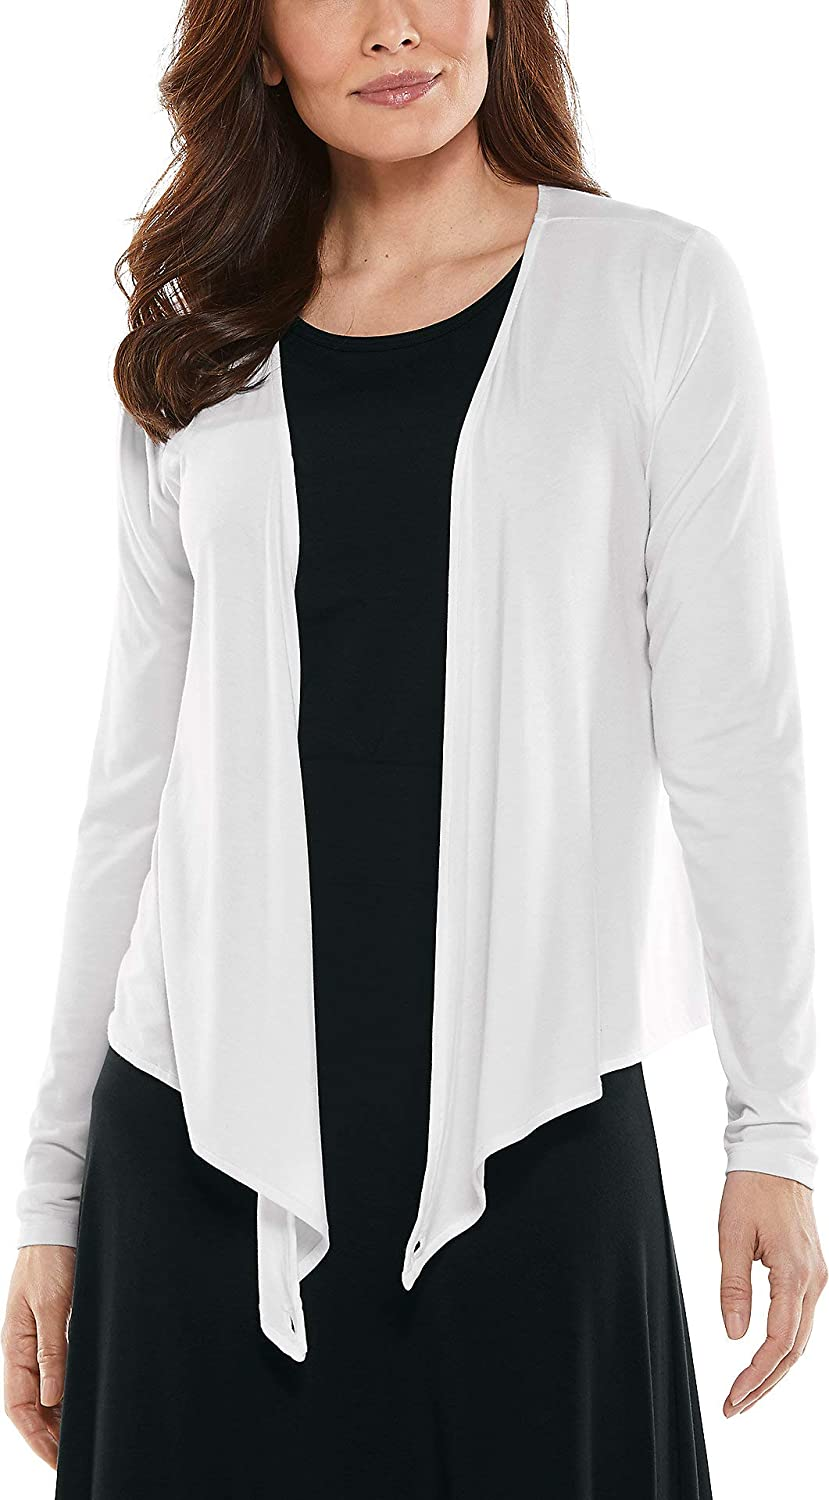 Coolibar Year-end annual account UPF 50+ Women's Vrae Everyday Wrap Fashion - Ranking TOP4 Sun Protec